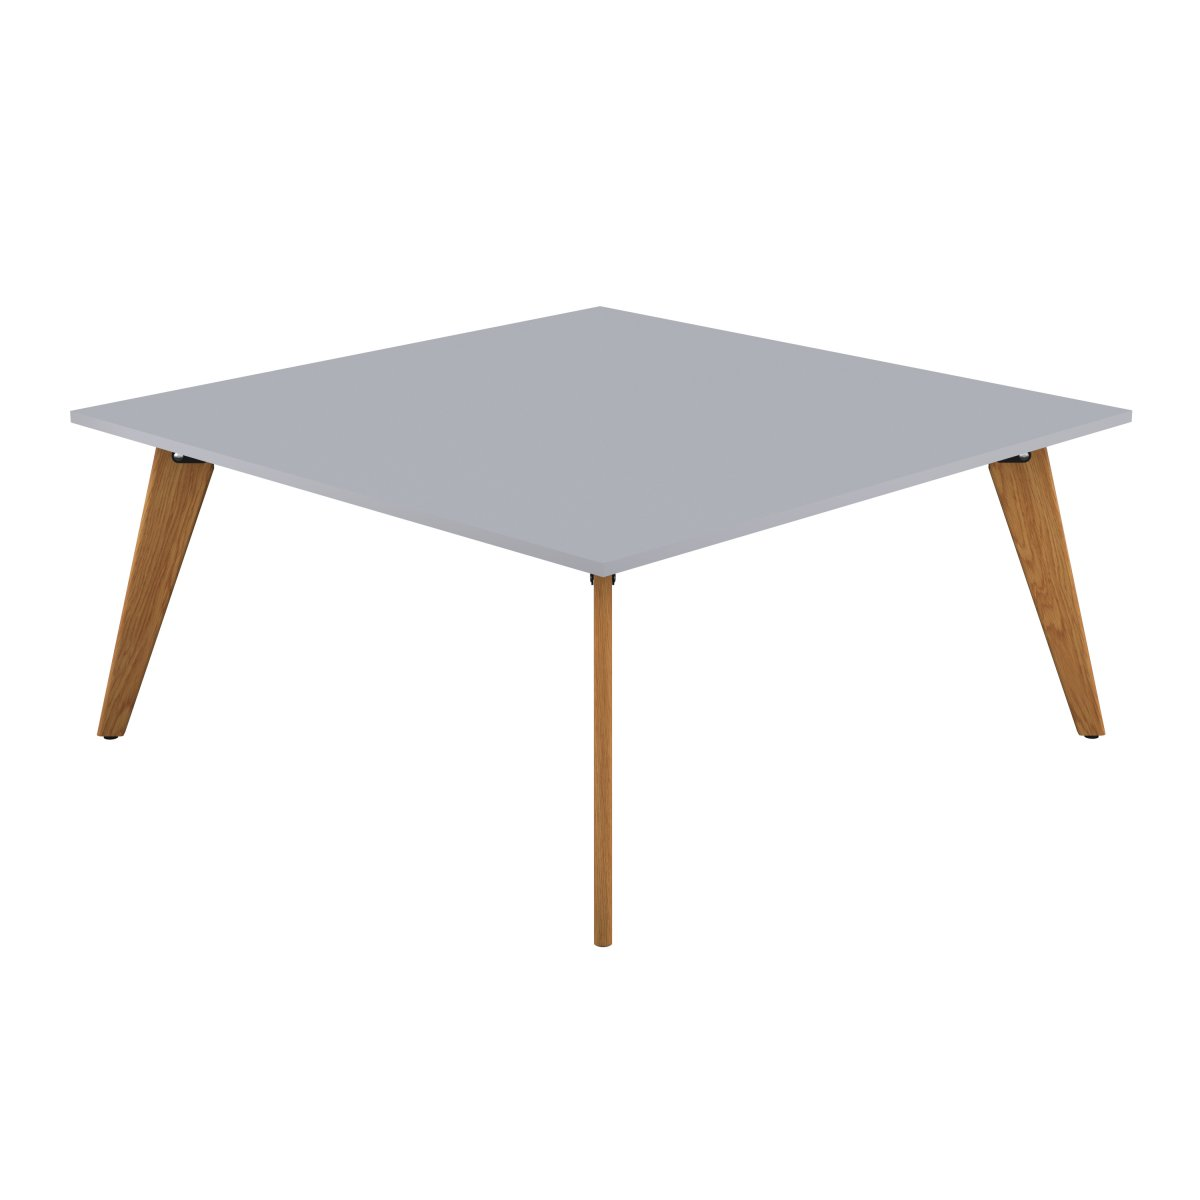 Plateau Square Table Grey 1600 X 1600 X 740H